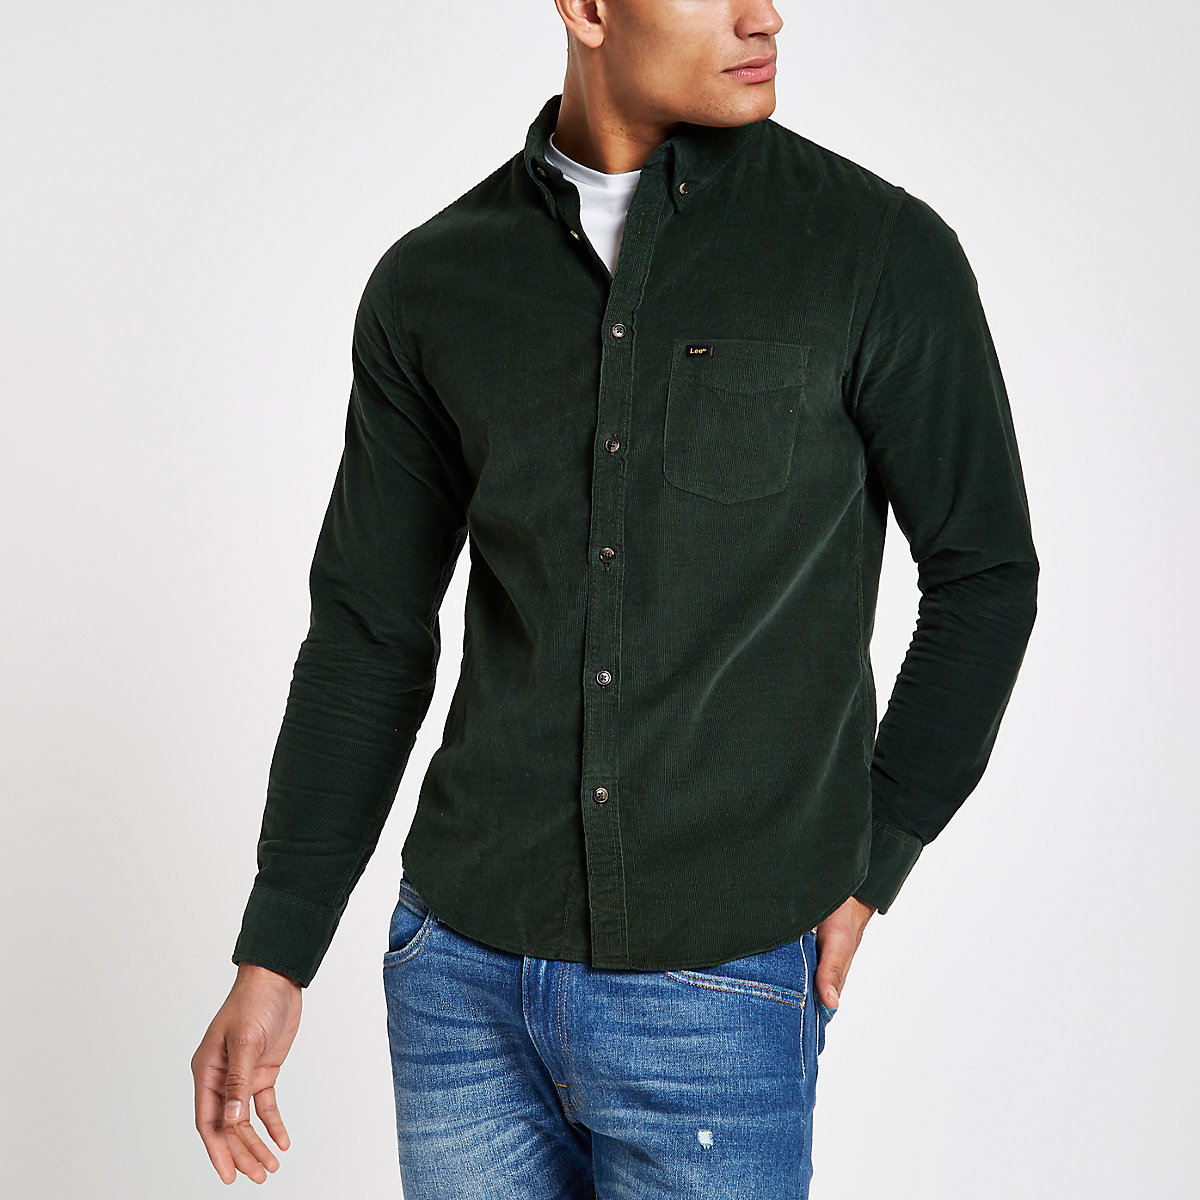 Lee green long sleeve cord shirt